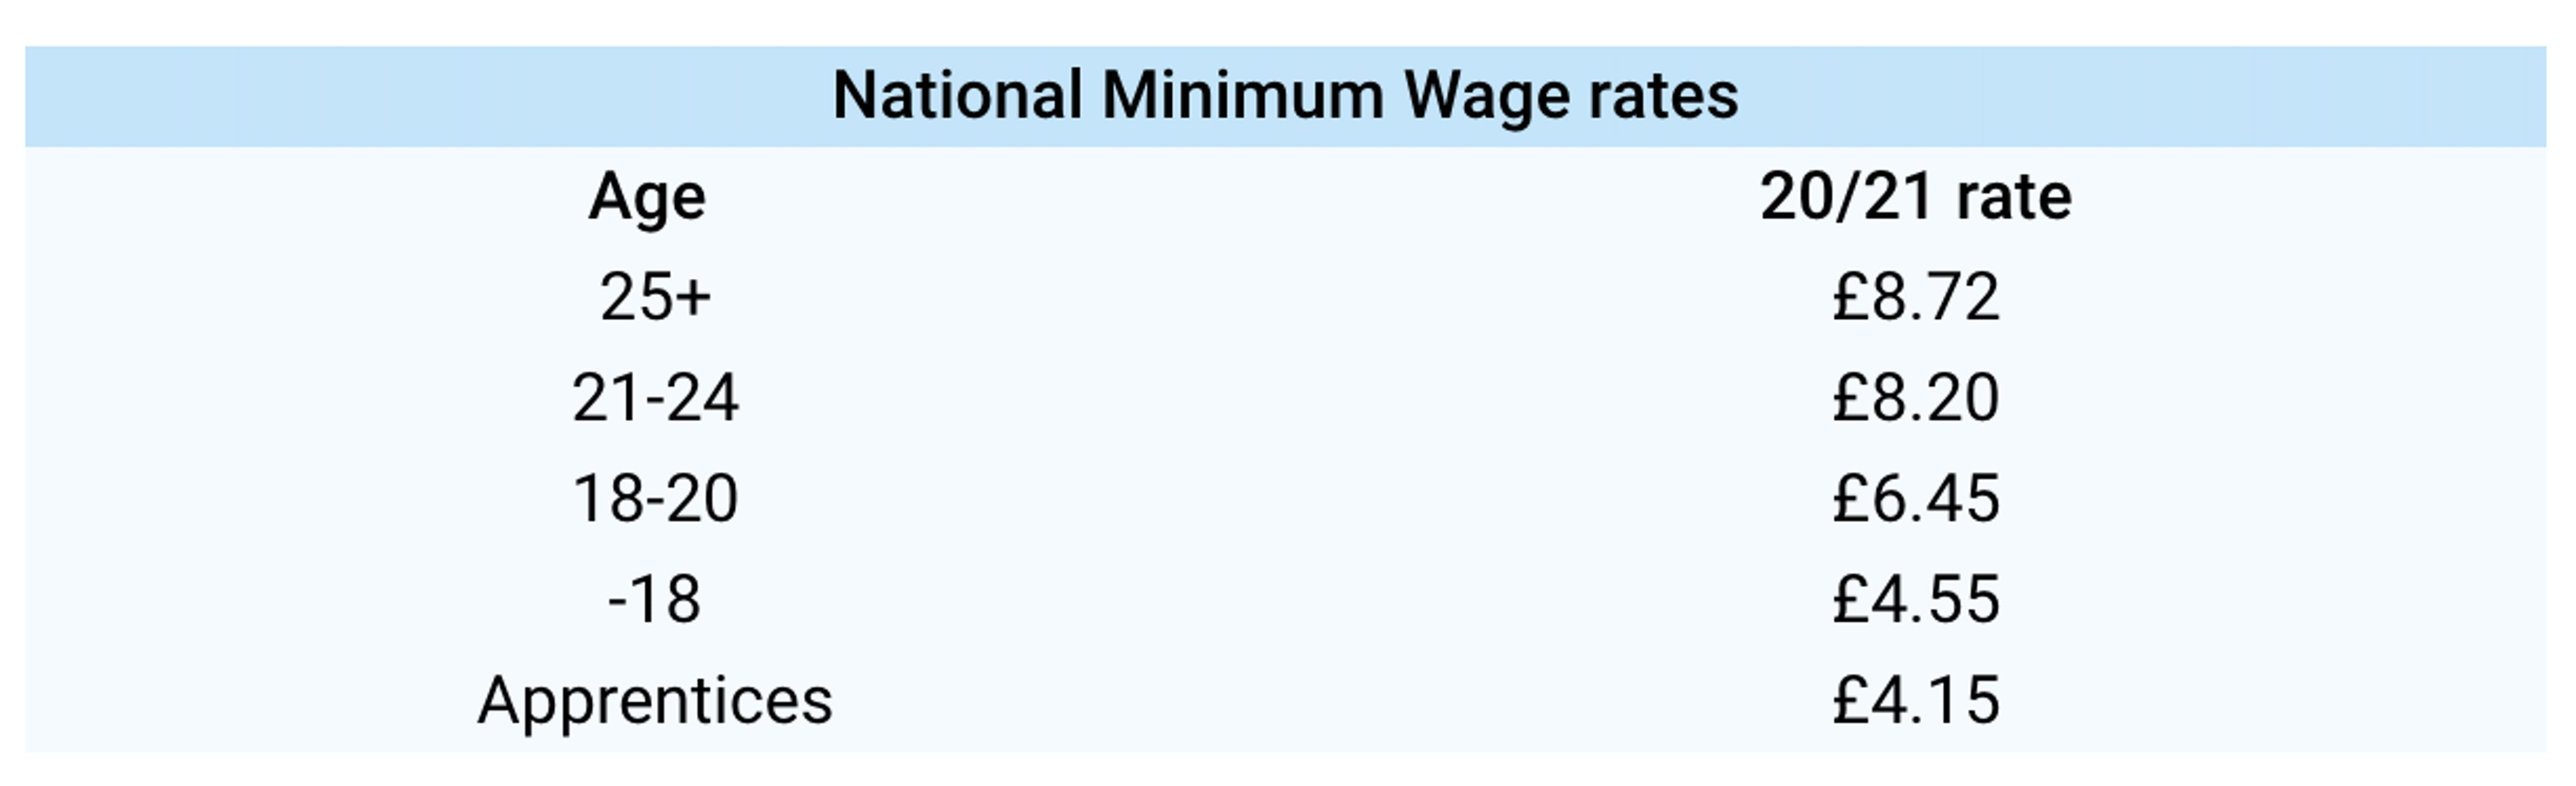 National Minimum Wage Rates.